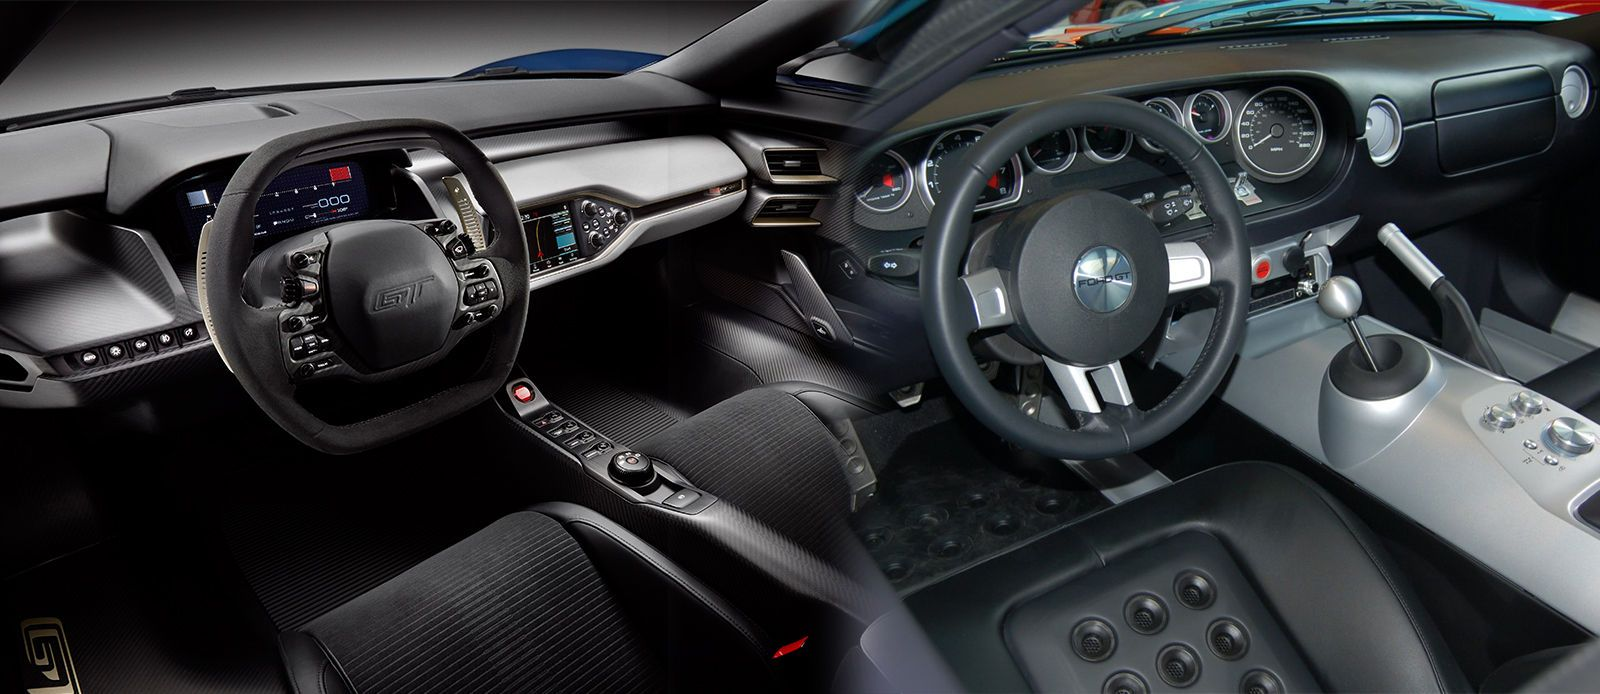 The New 2016 Ford Gt S Interior Vs Ford Gt 2005 Ford Gt Ford Gt